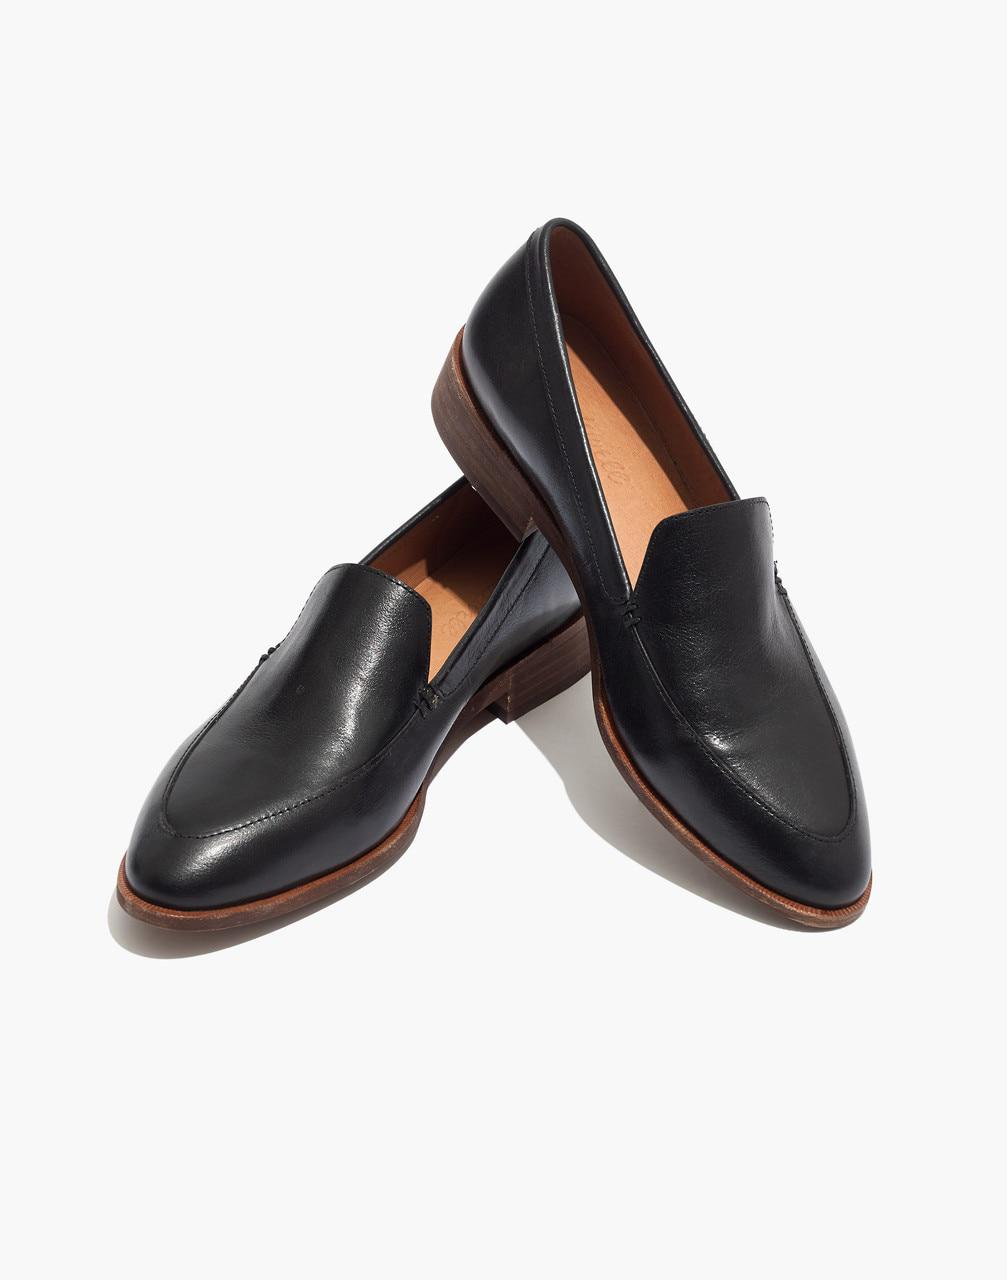 939b9d59738 Lyst - Madewell The Frances Loafer